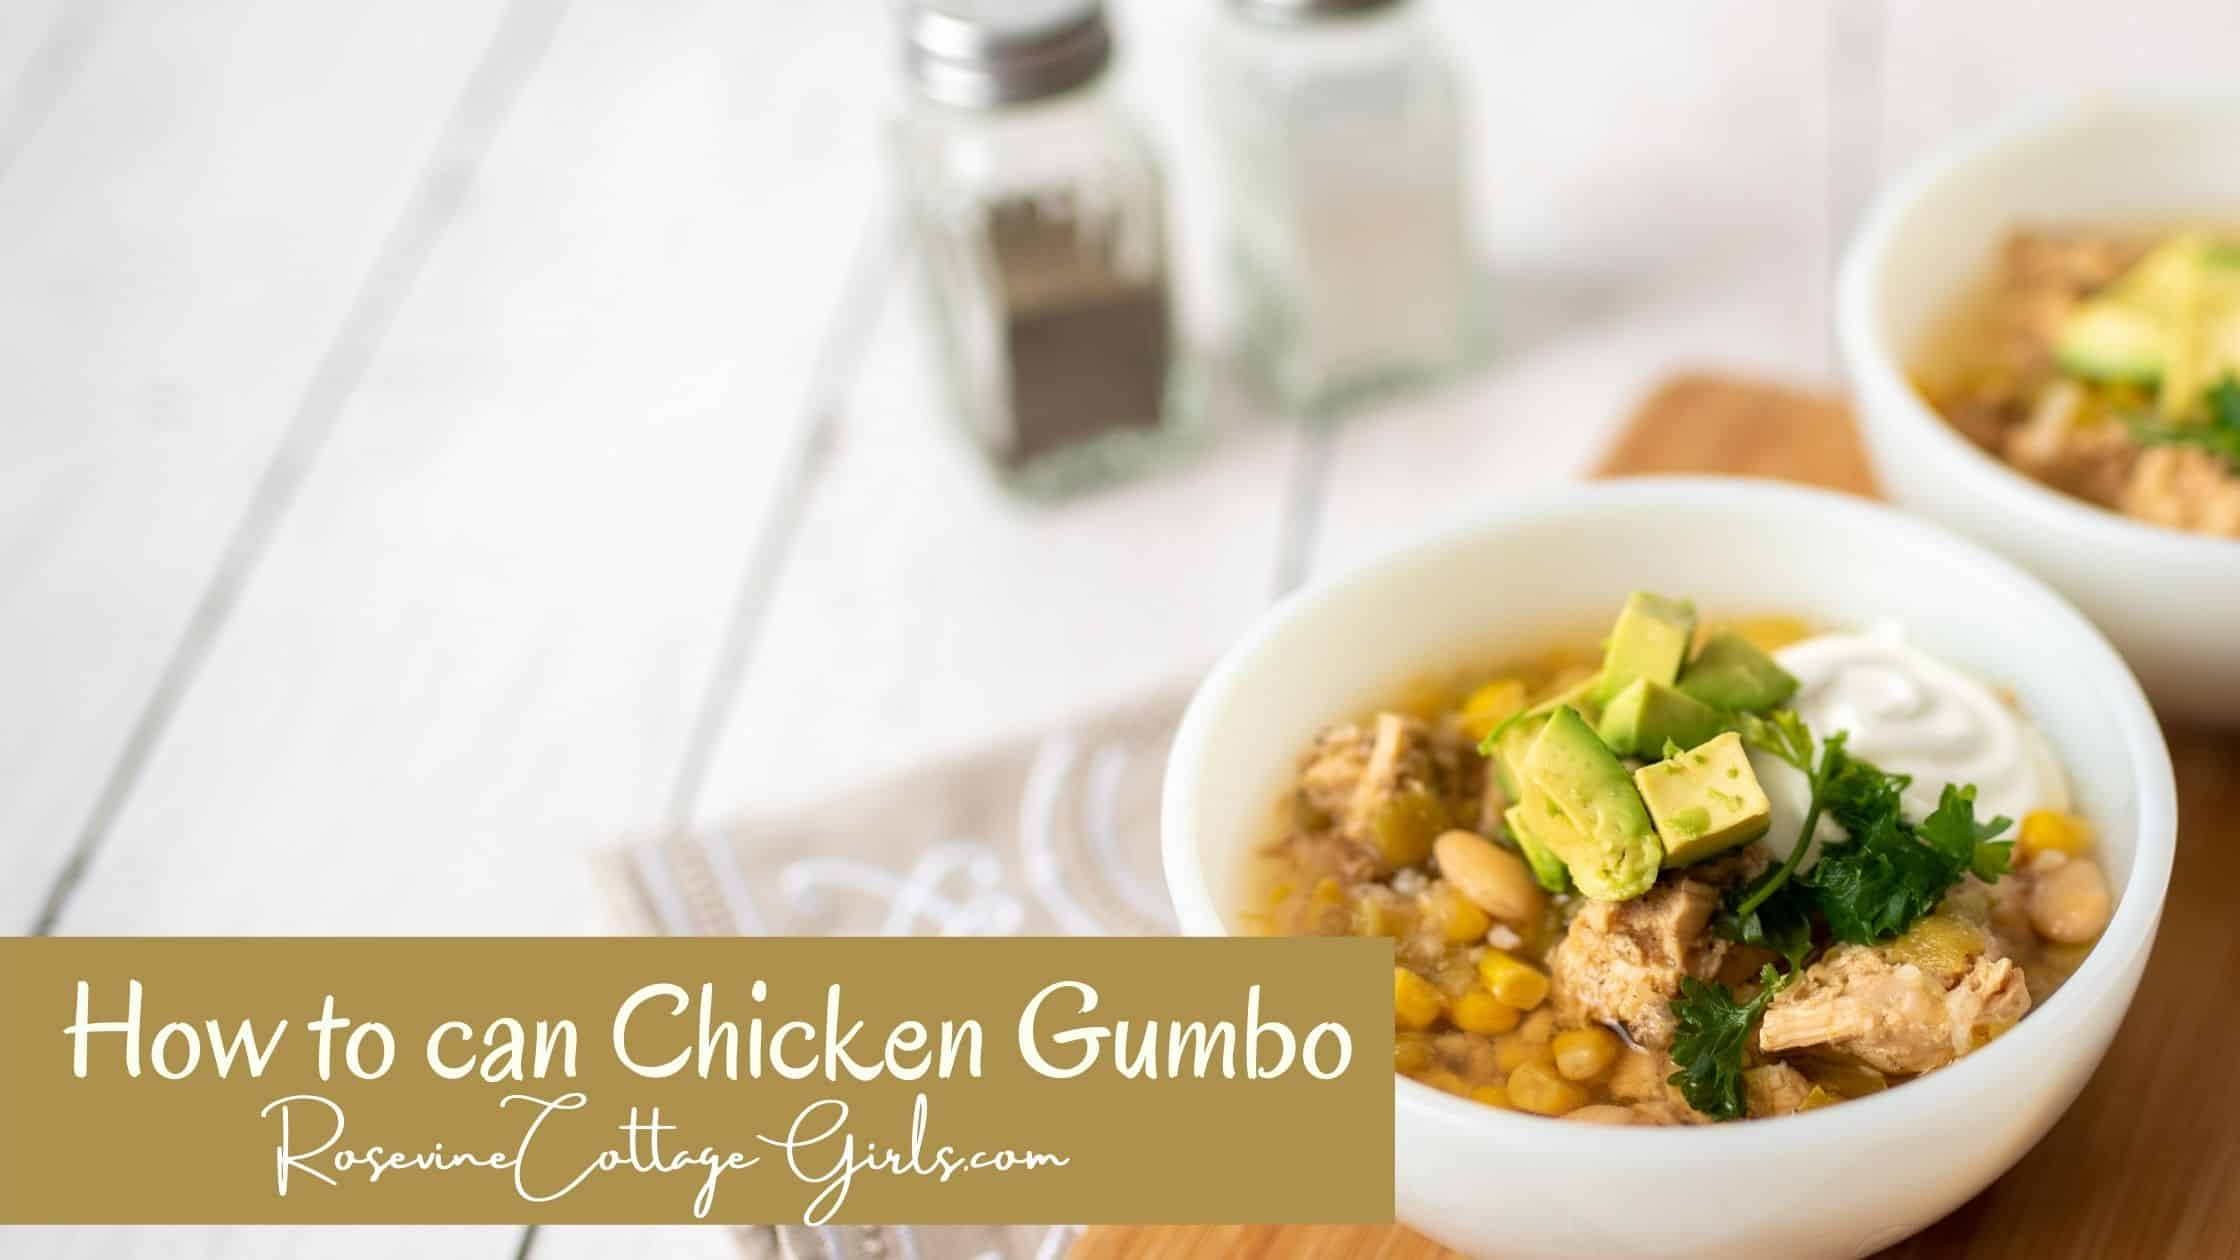 how to can chicken gumbo | Bowl of chicken gumbo soup on a white table with salt and pepper shakers in the background